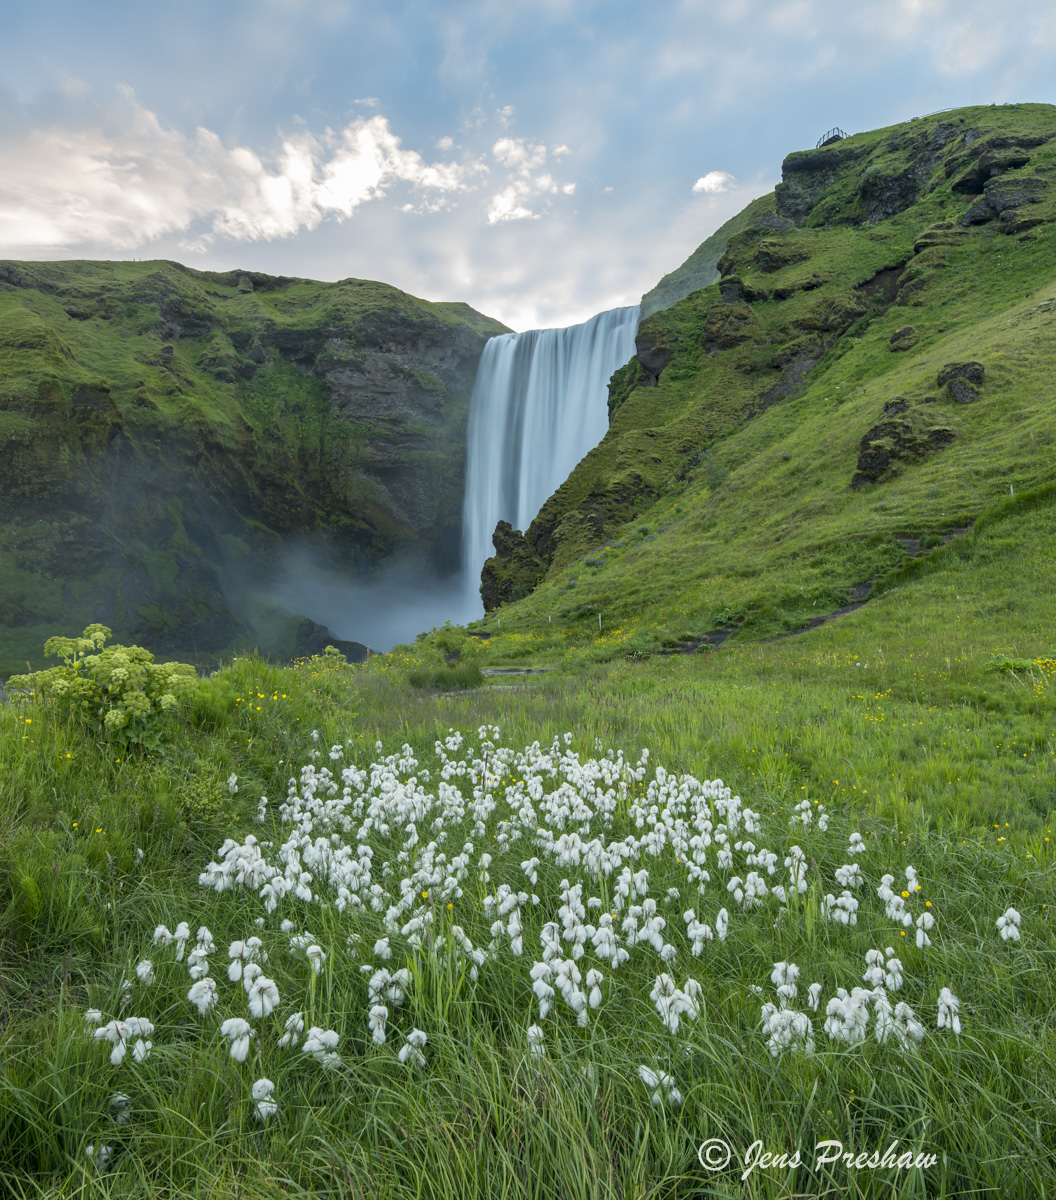 Hrafnafifa, Scheuchzer's cottongrass, White cottongrass, Eriophorum scheuchzeri, Skógafoss, Waterfall, Skógar, Skógá River, Iceland, Summer, photo